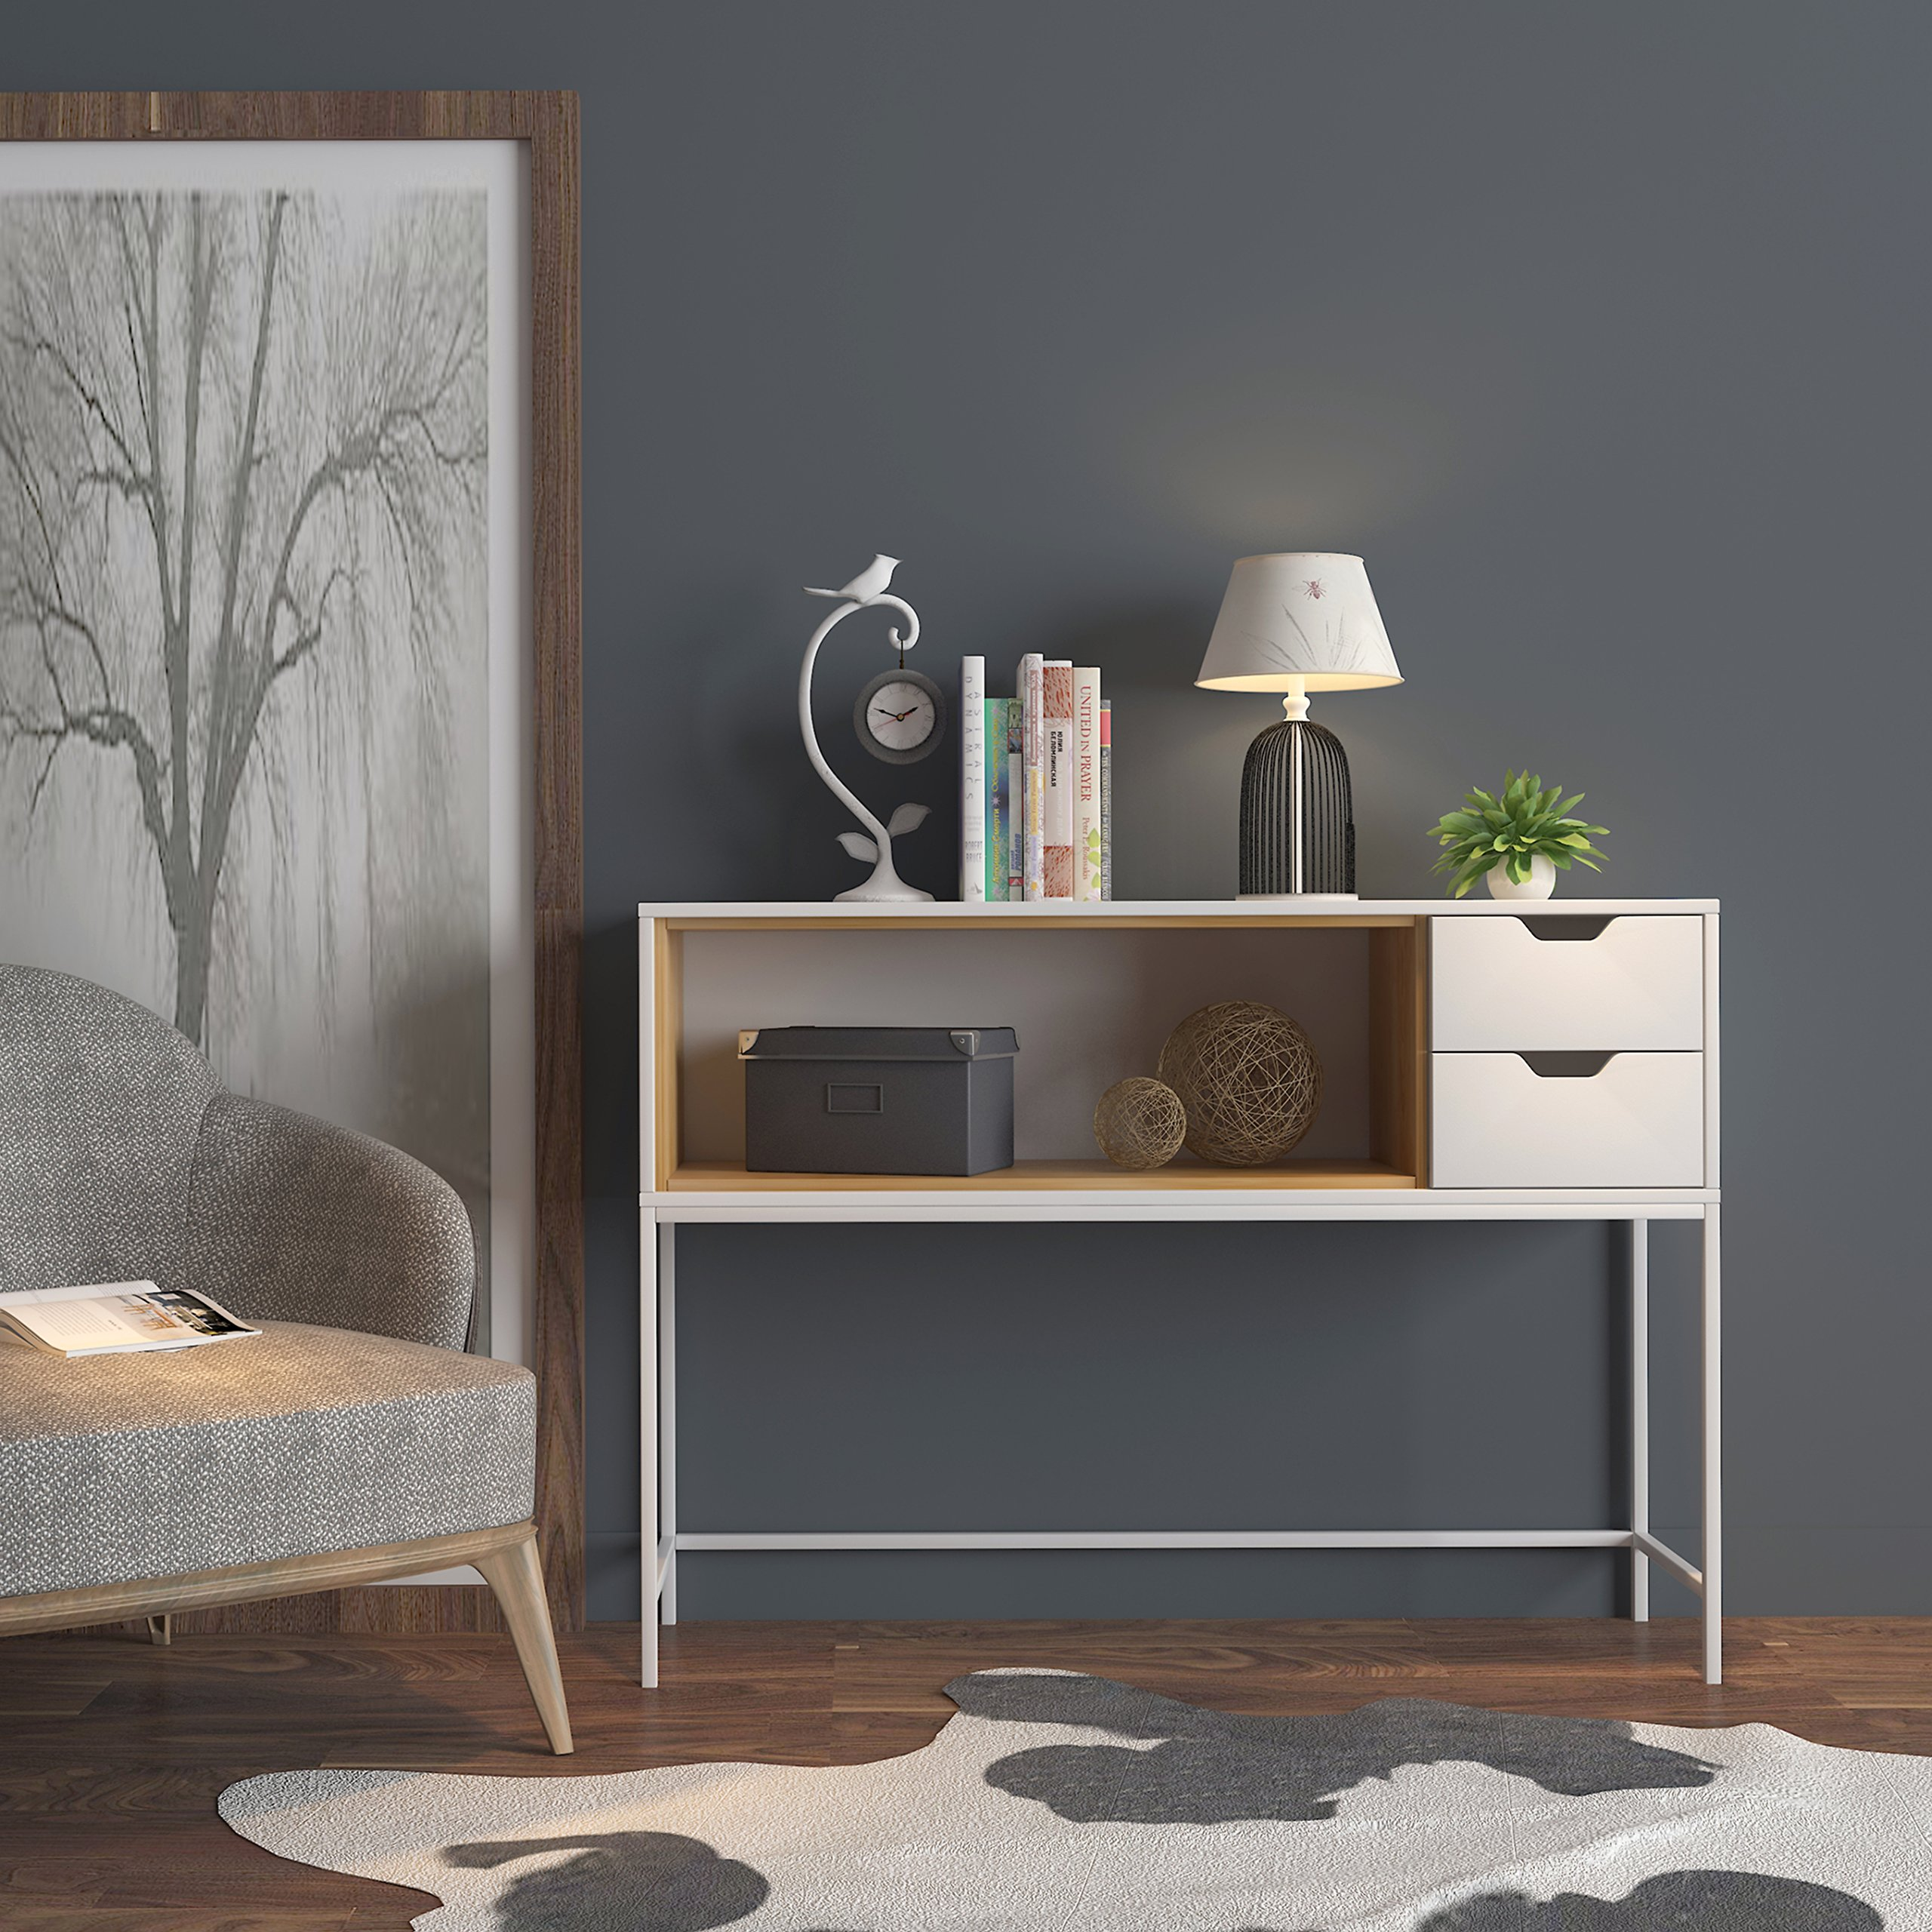 White / Natural Finish Sofa Console Buffet Sideboard Display Table with 2 Drawers by eHomeProducts